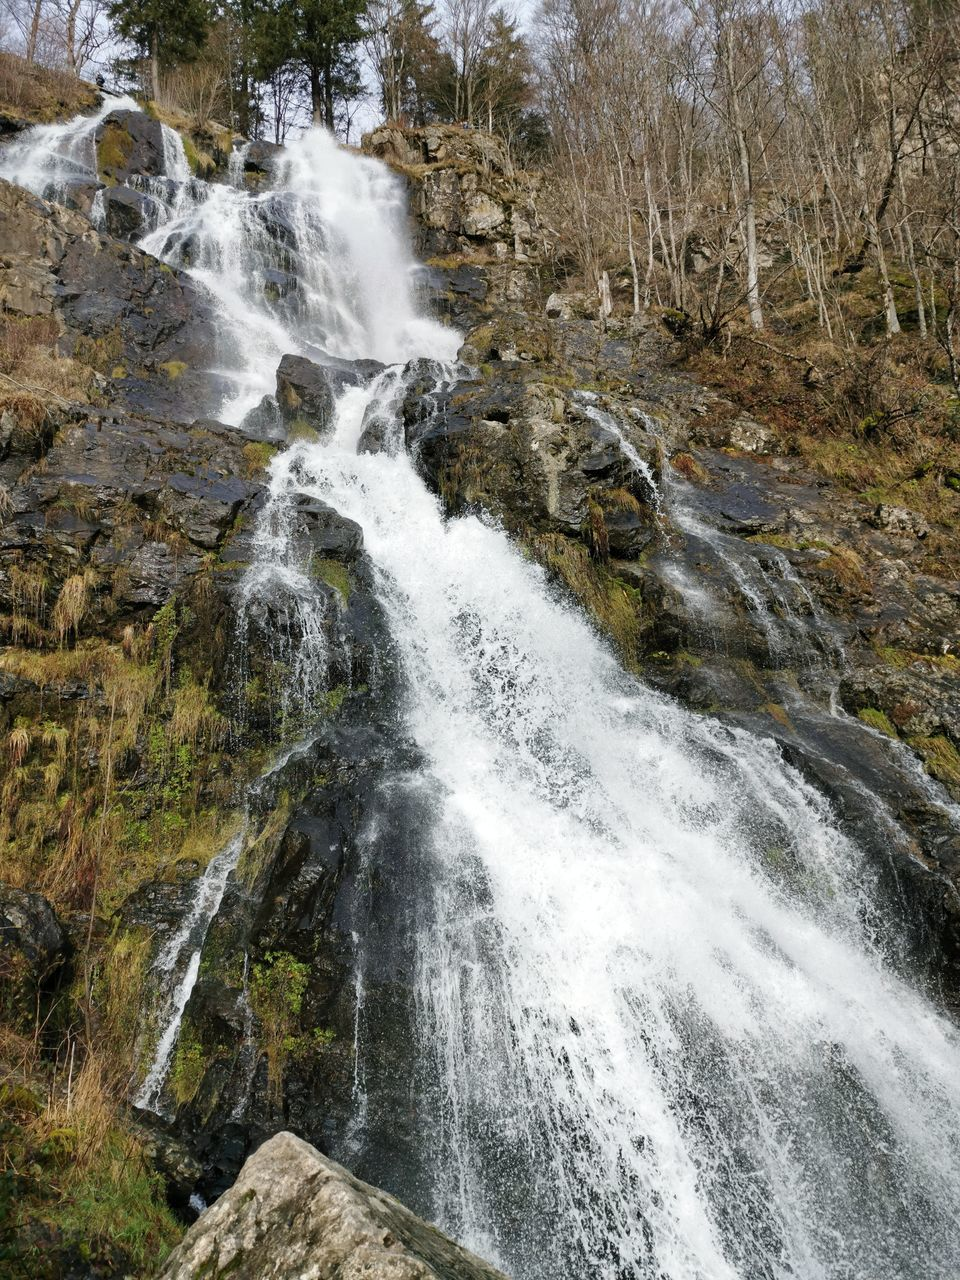 SCENIC VIEW OF WATERFALL